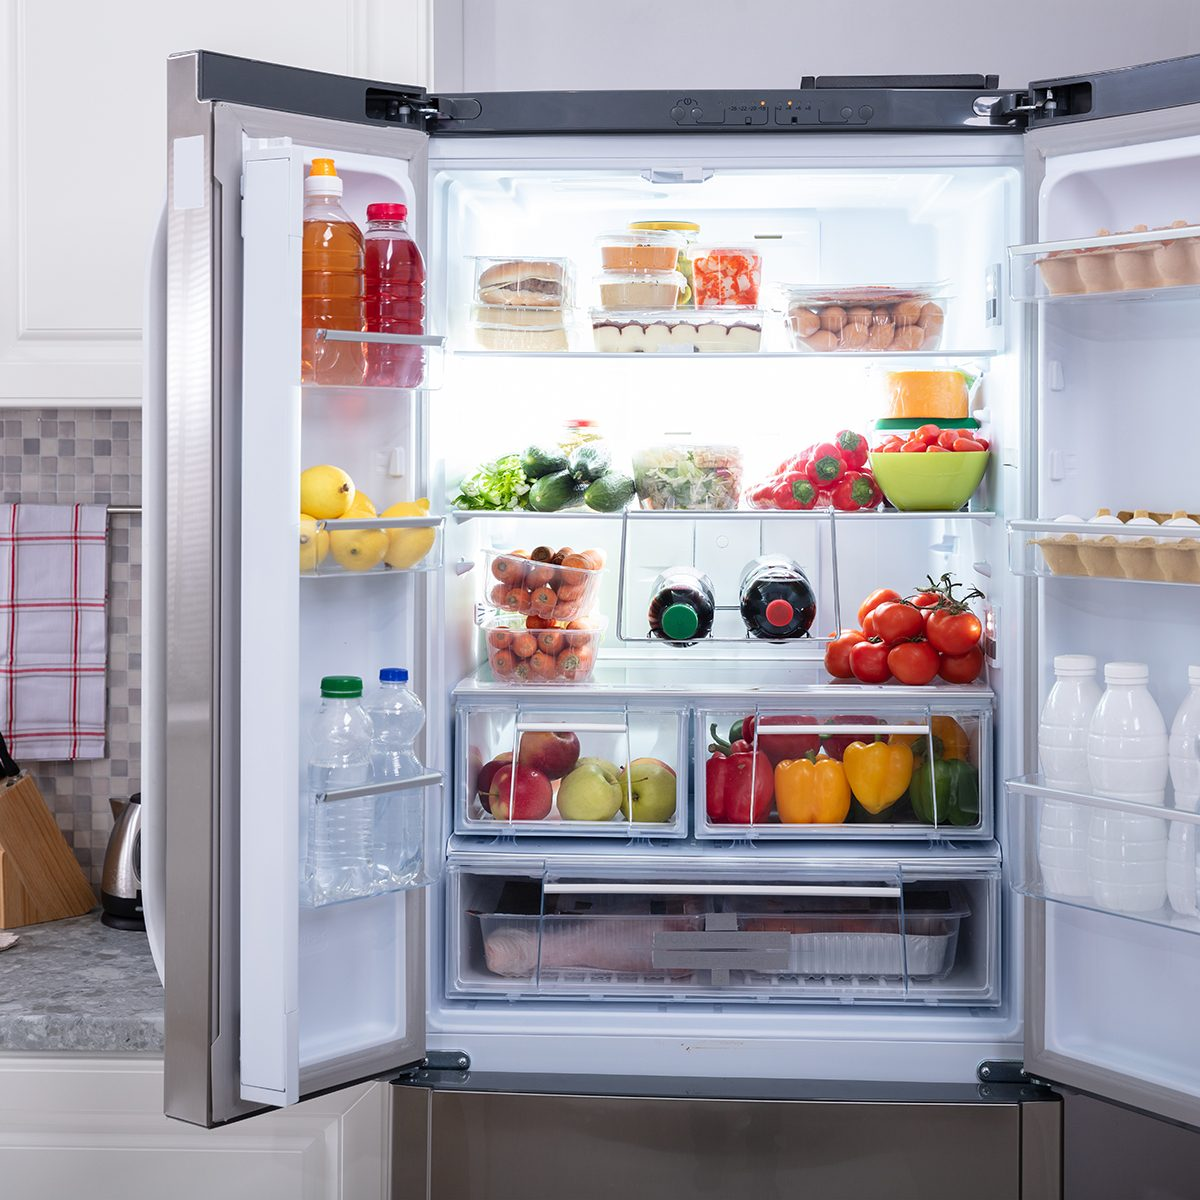 An Open Refrigerator Filled With Fresh Fruits And Vegetables